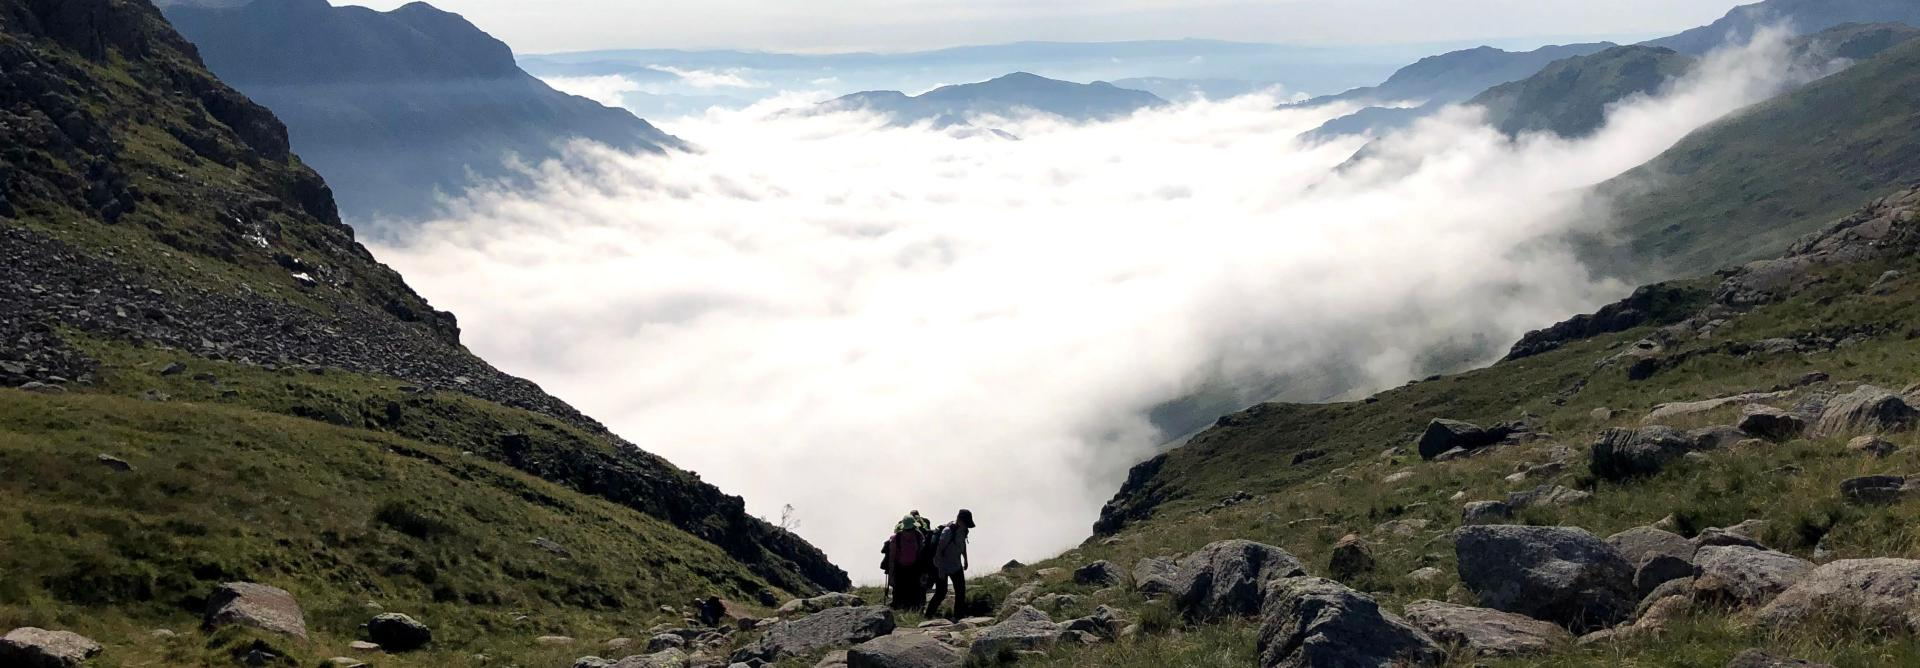 Lake District 5 Peaks Challenge